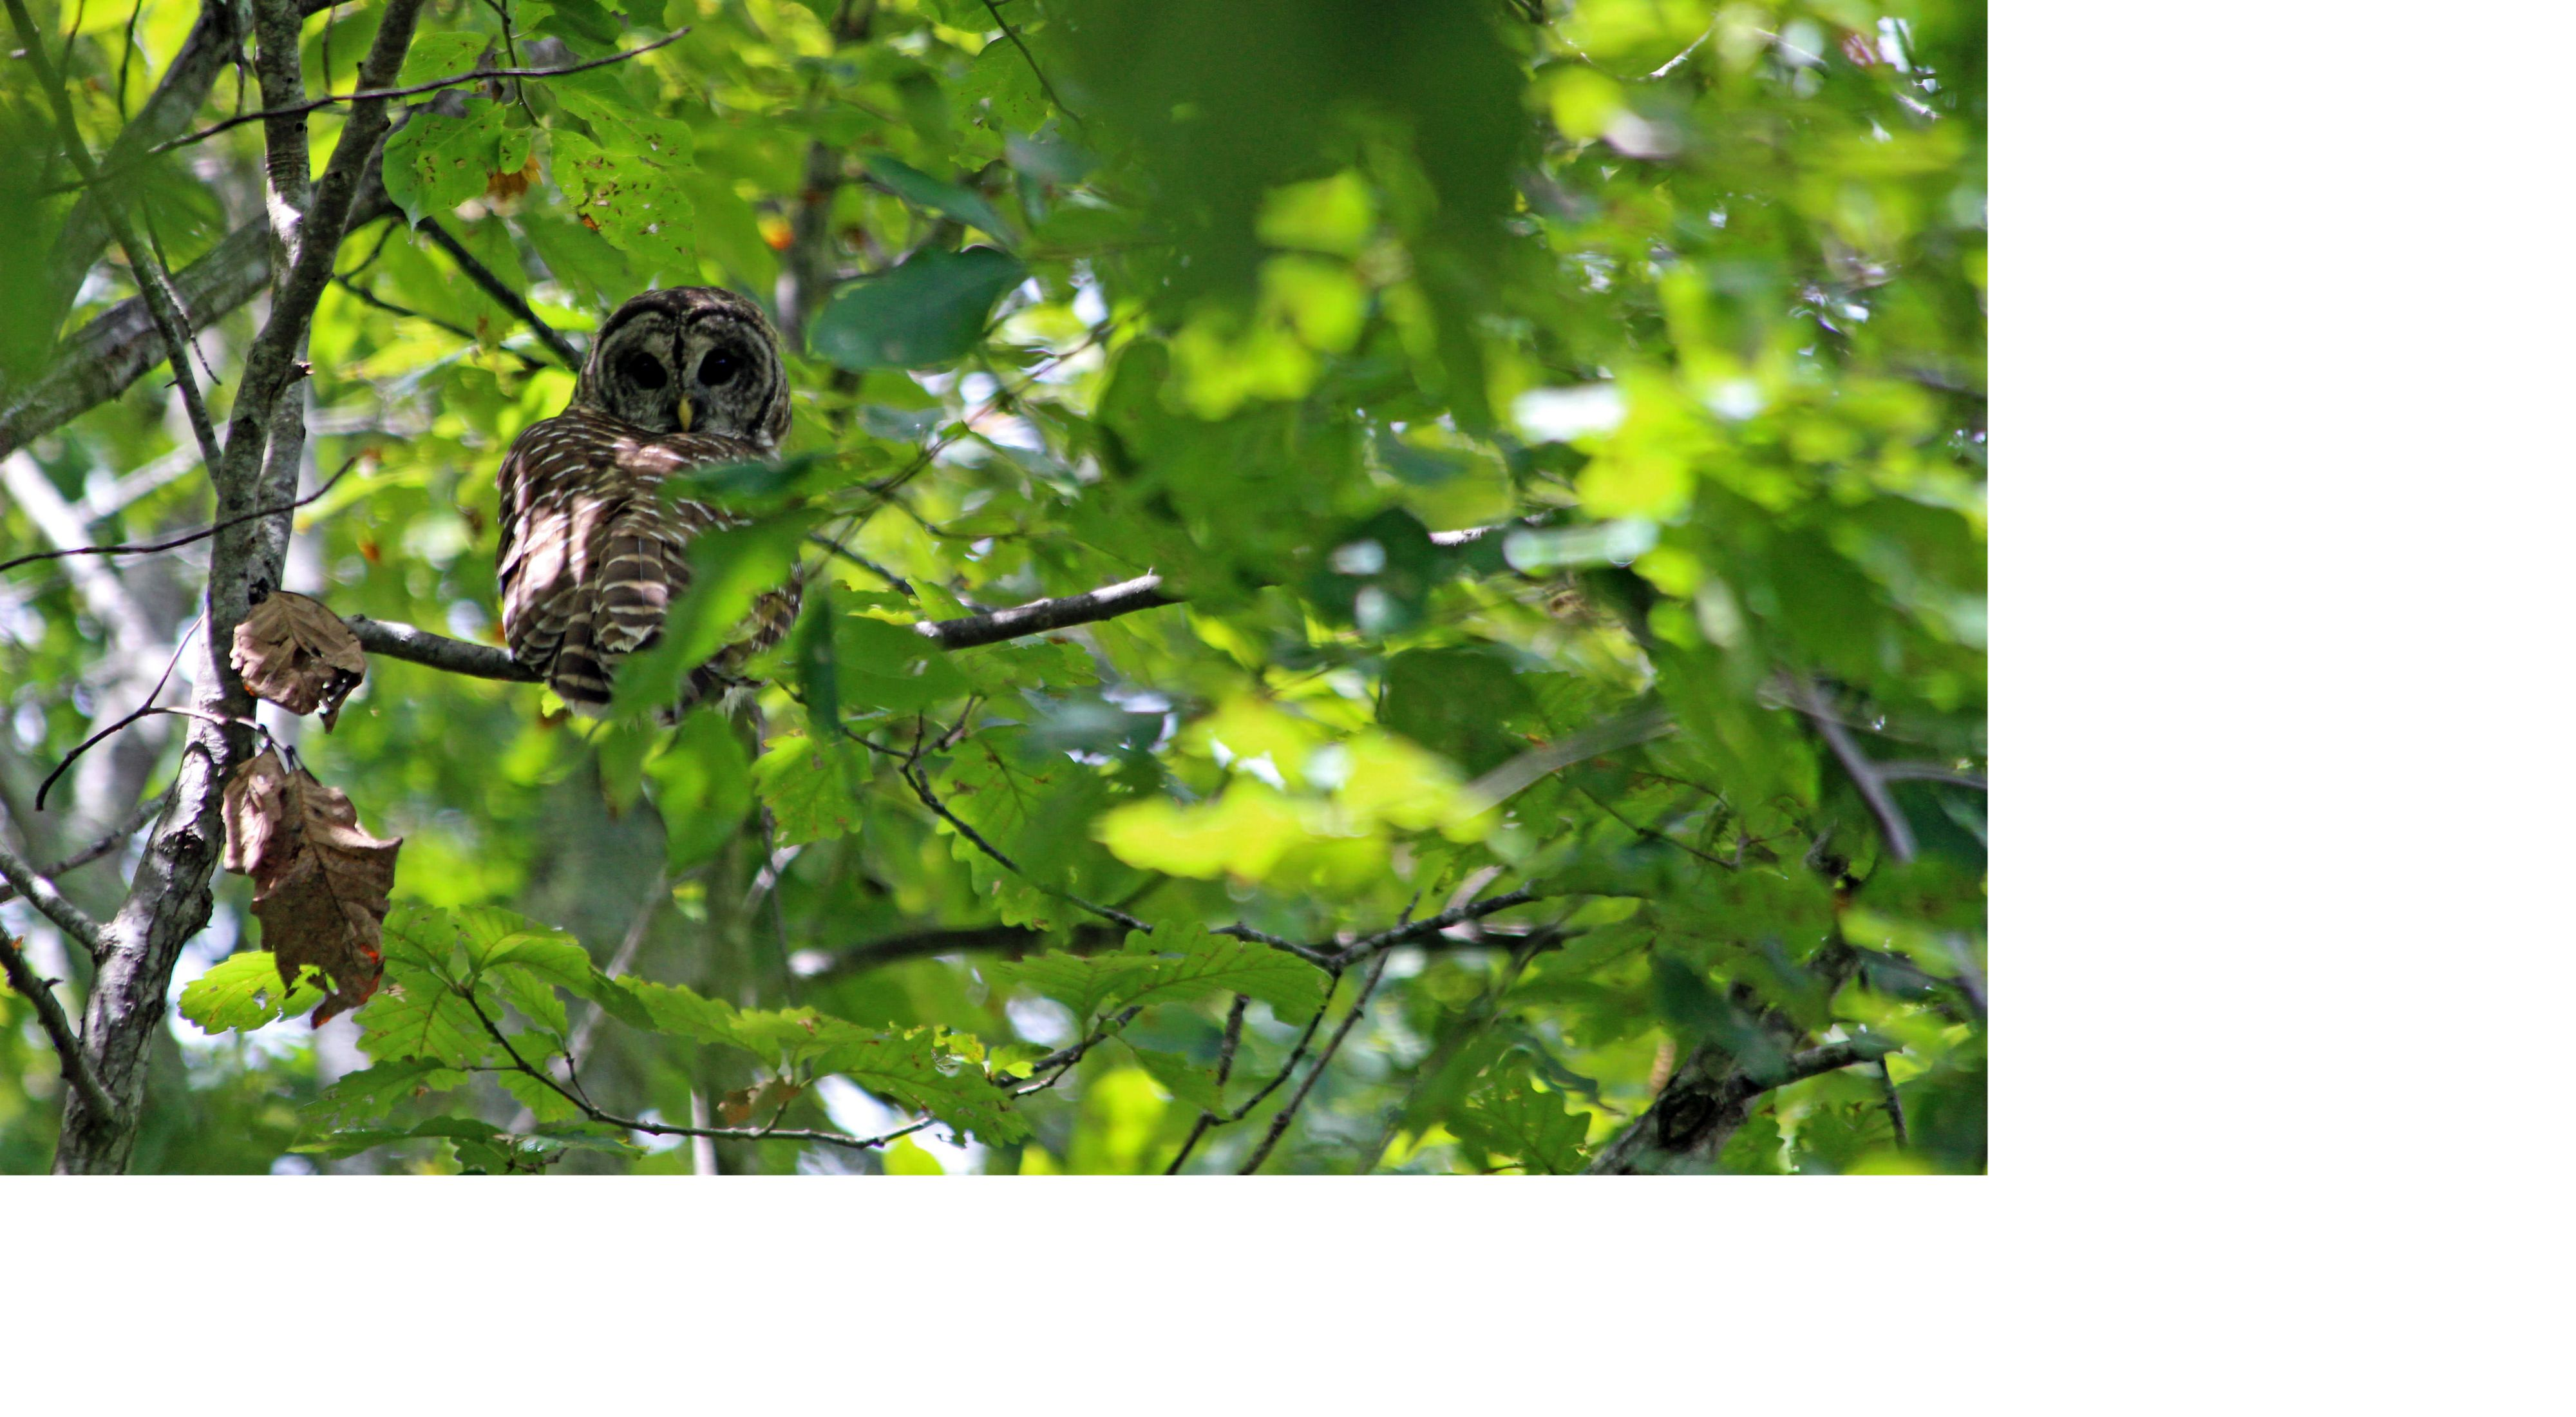 An owl sits in a tree surrounded by green leaves.